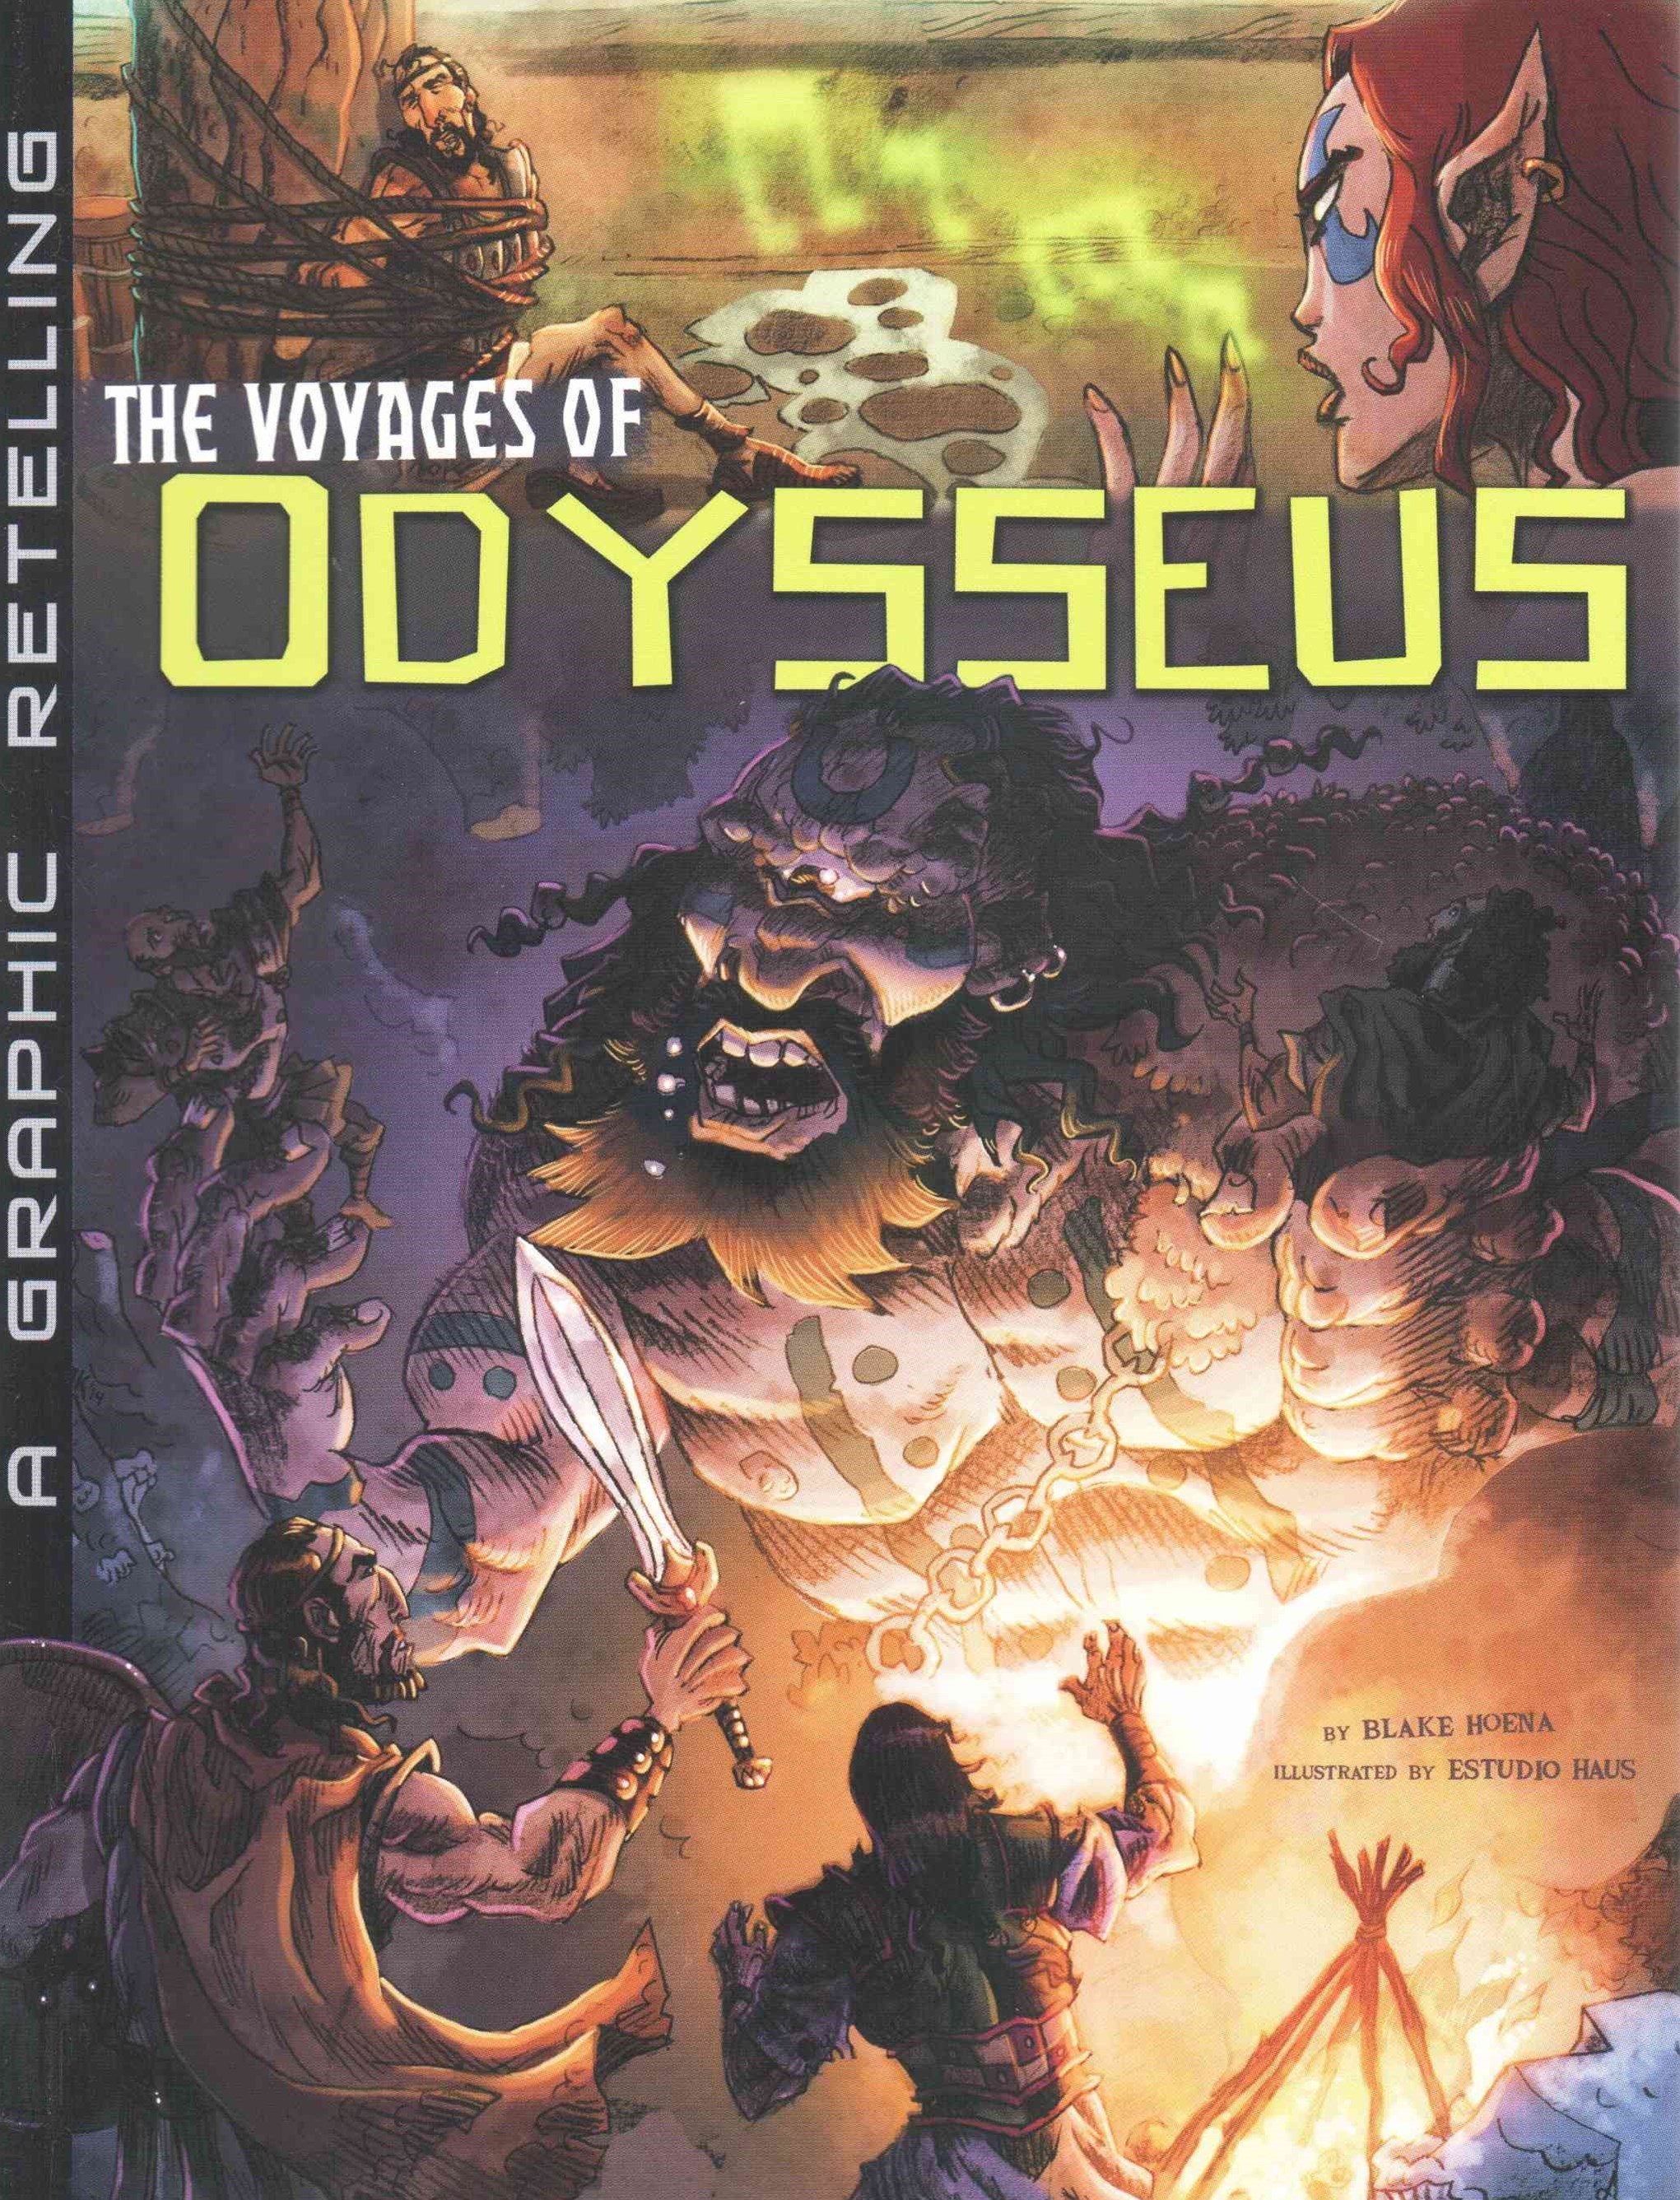 The Voyages of Odysseus